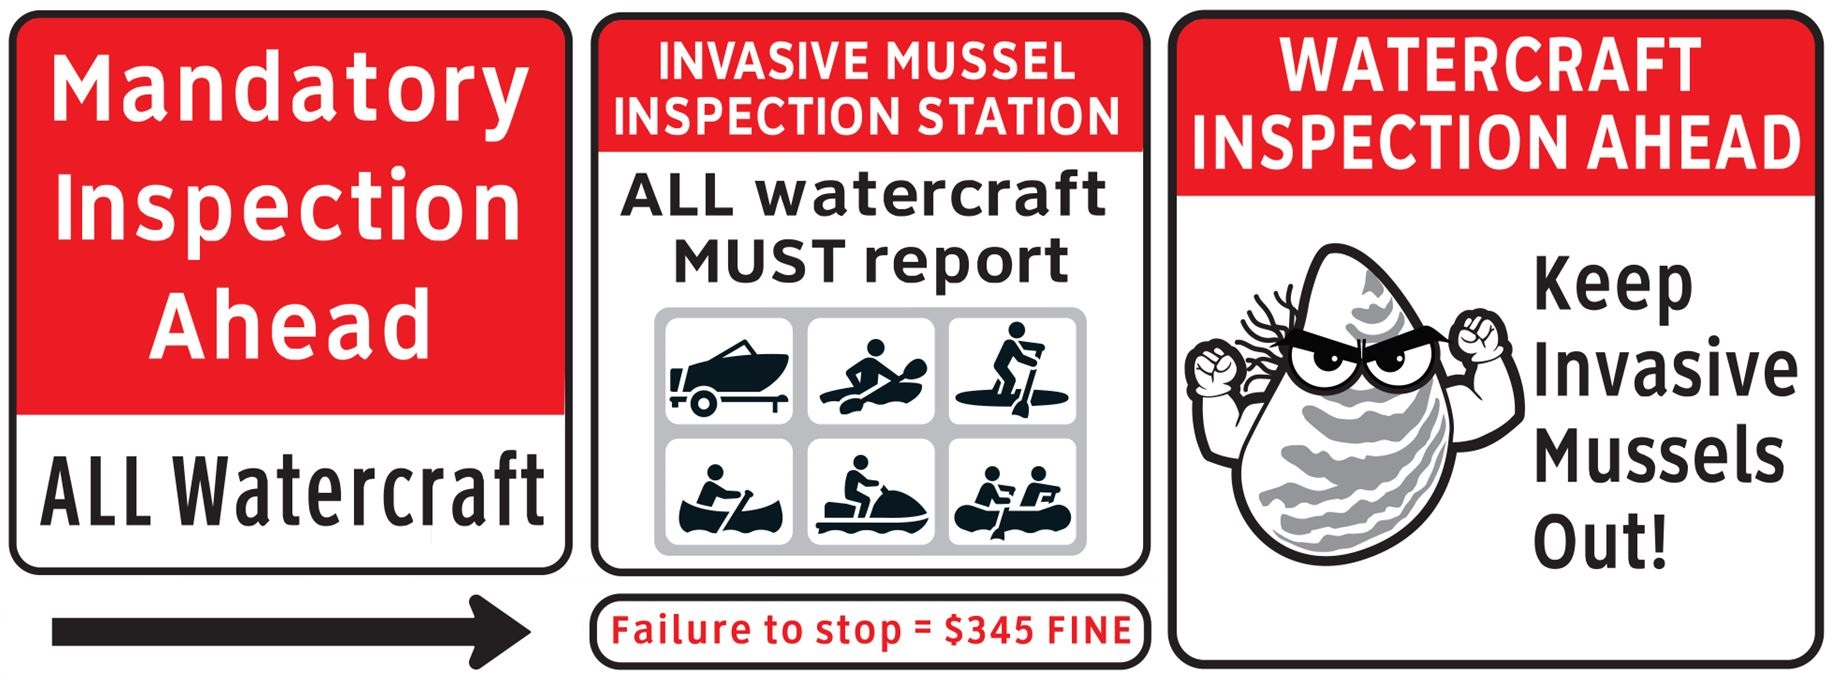 Help keep invasive mussels out